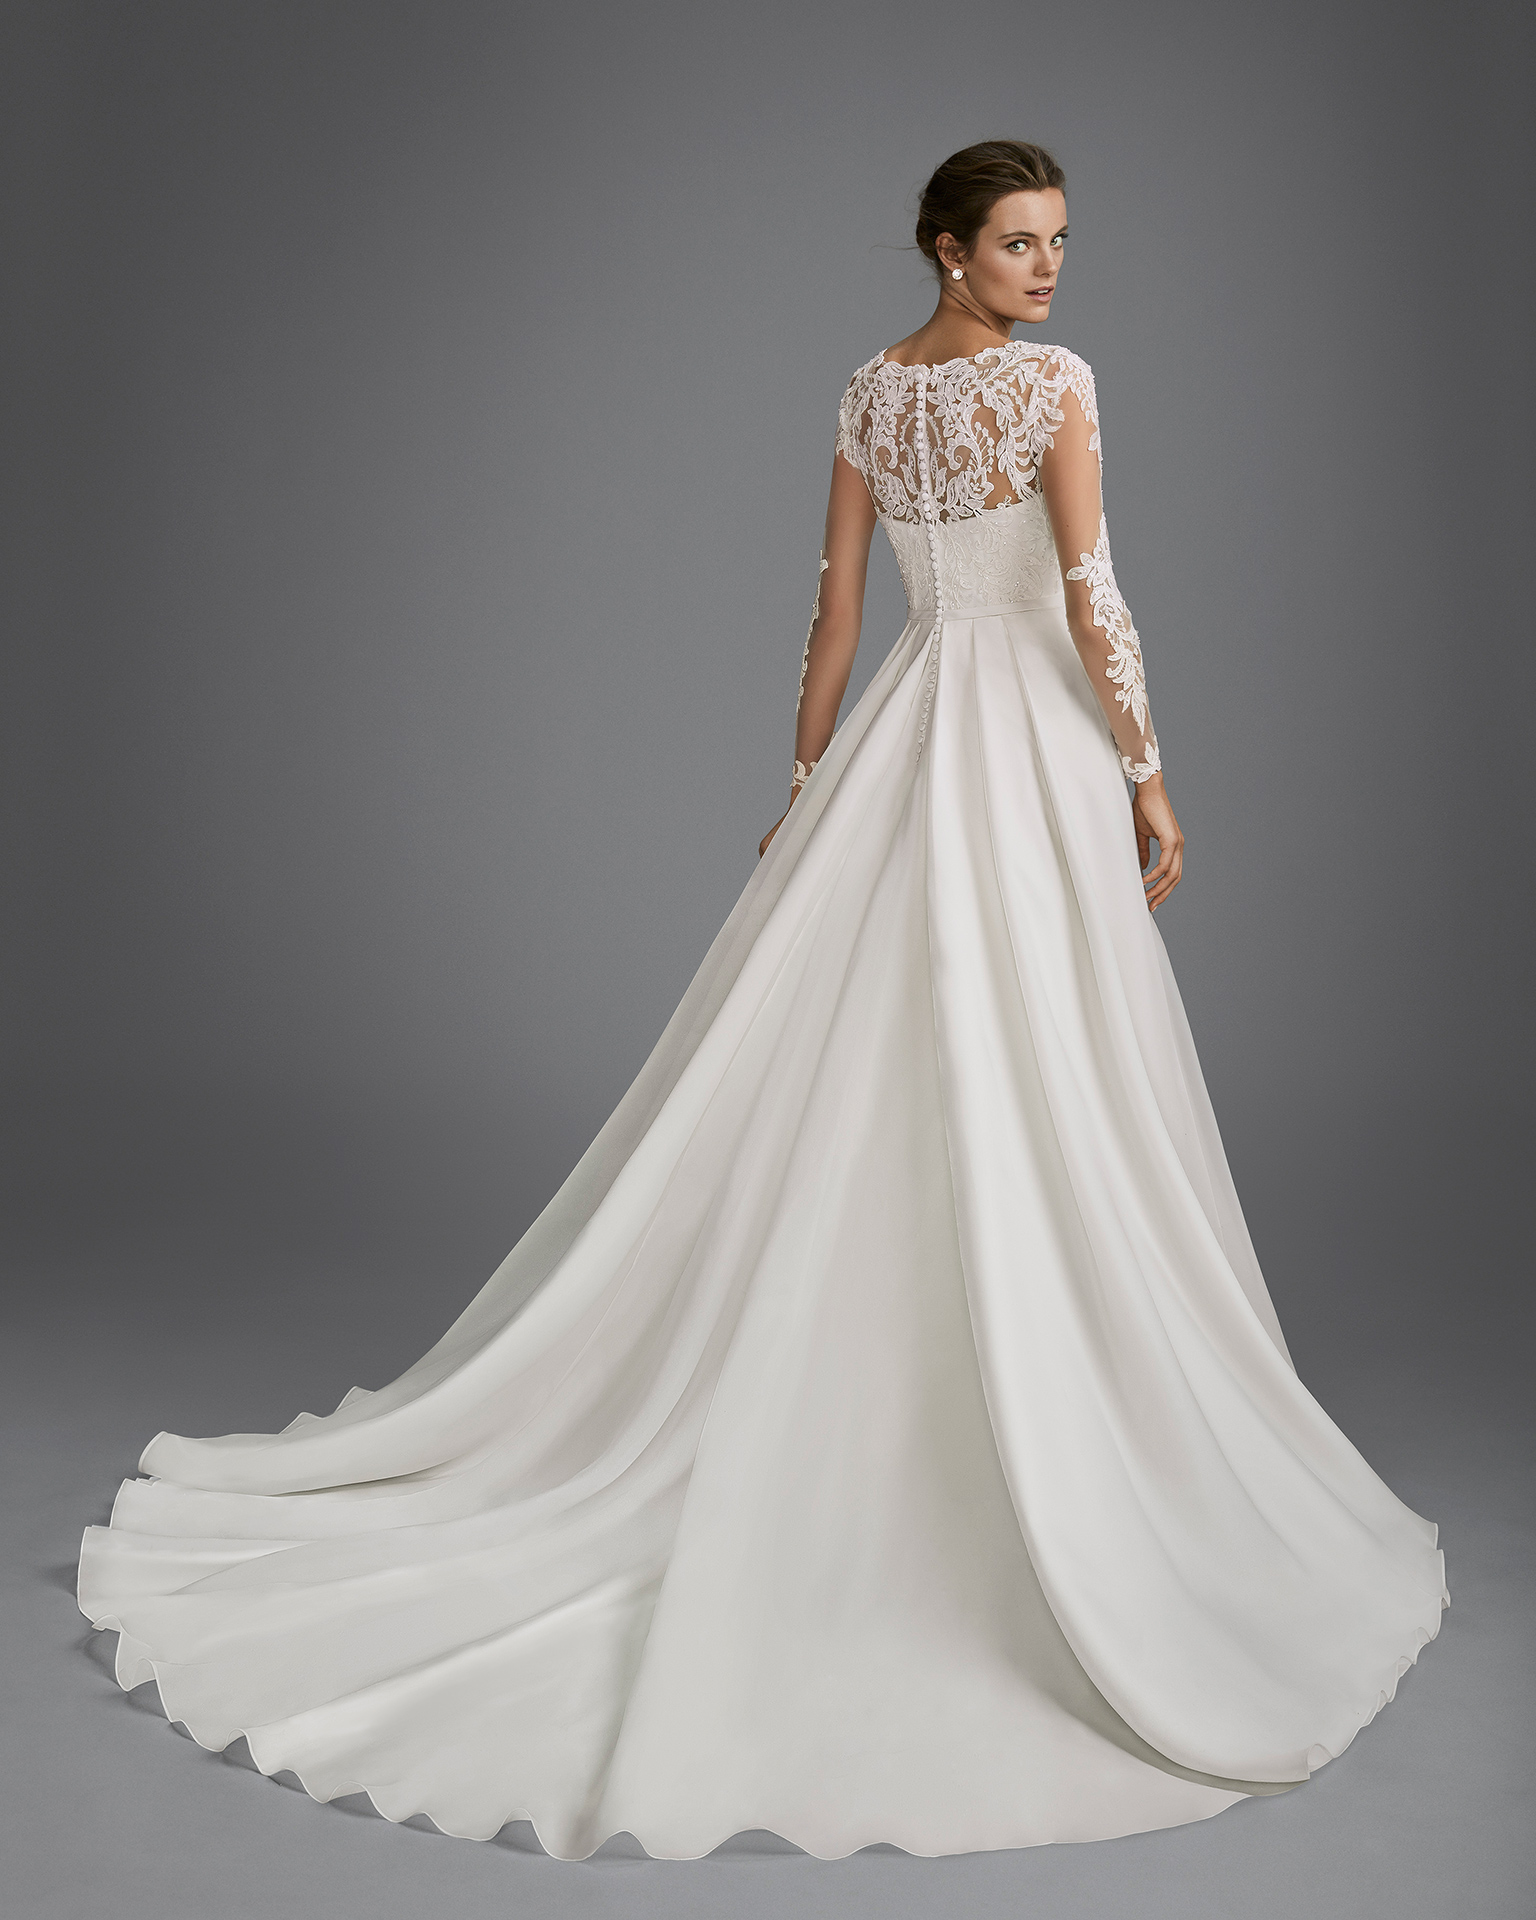 Princess style beaded lace and organza wedding dress with long sleeves and illusion neckline.